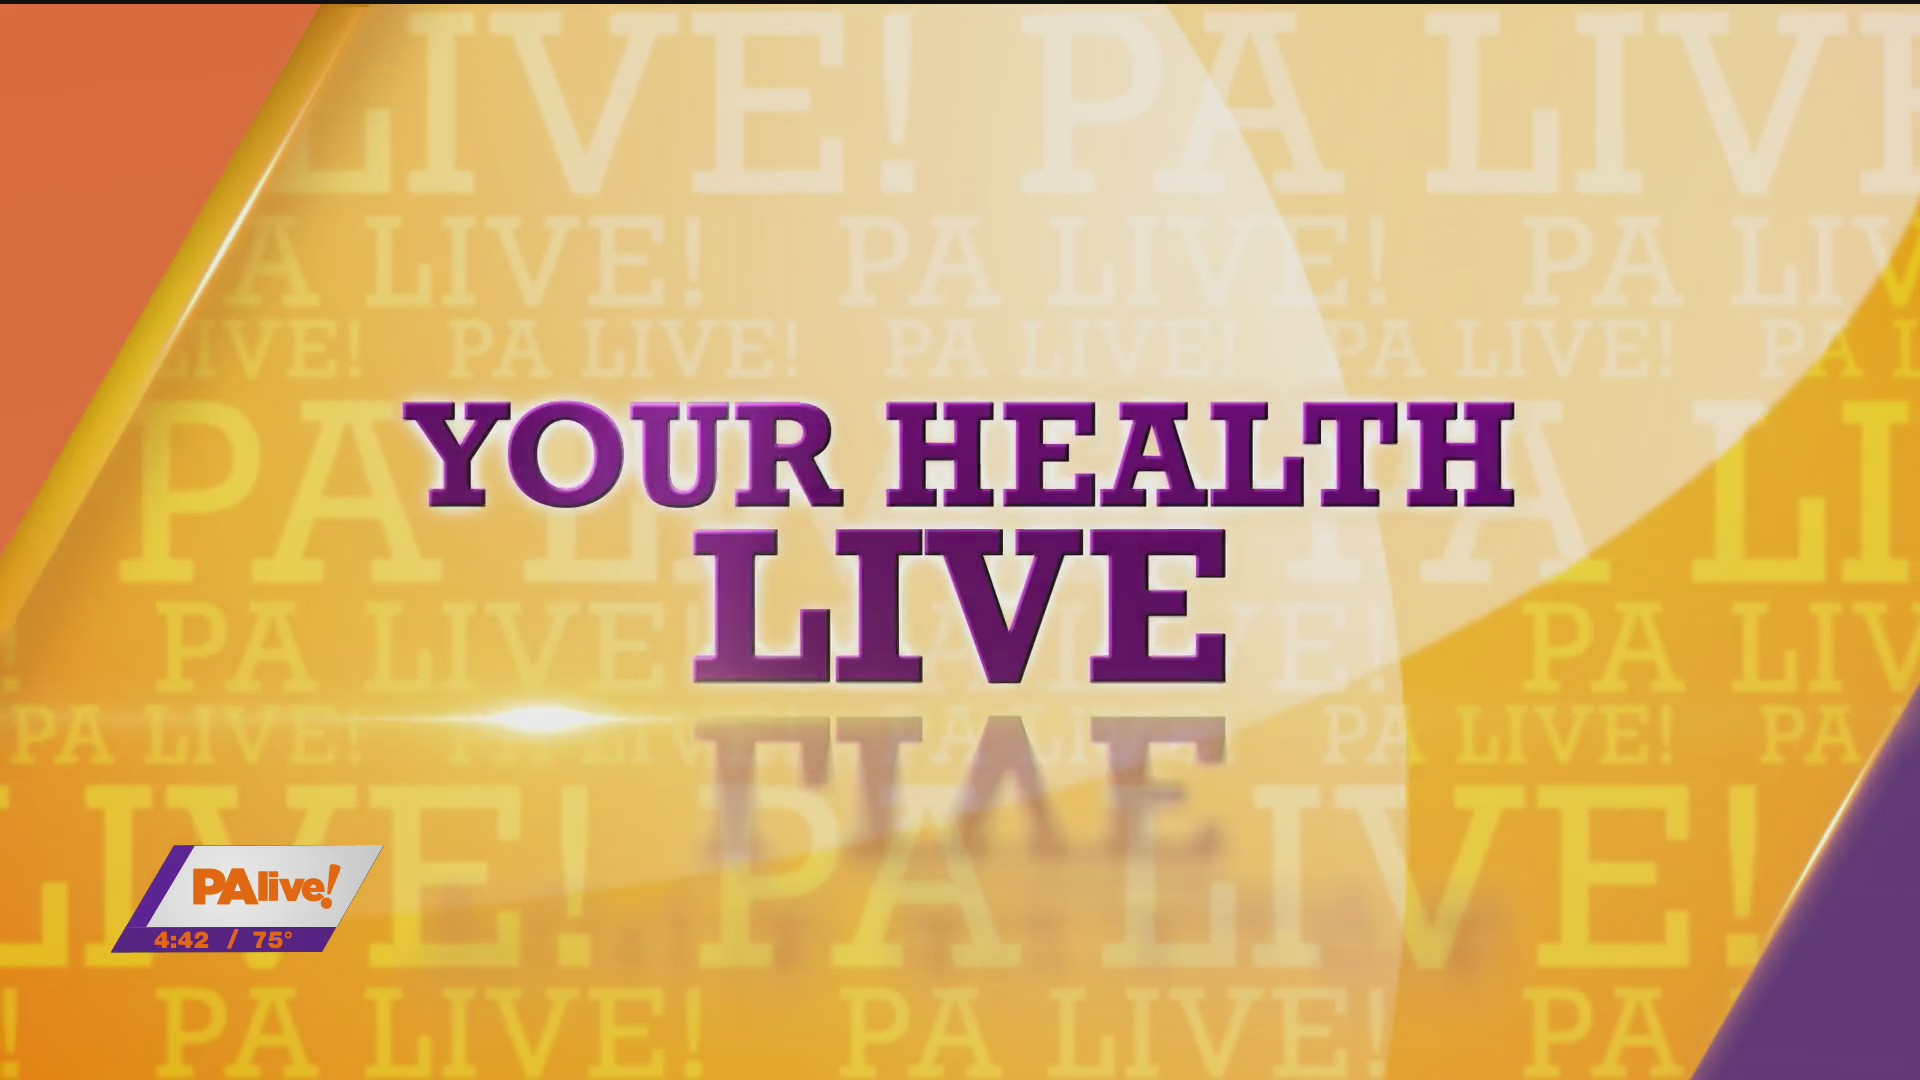 PAlive! Your Health Live (Obstetrics & Gynecology Associates)